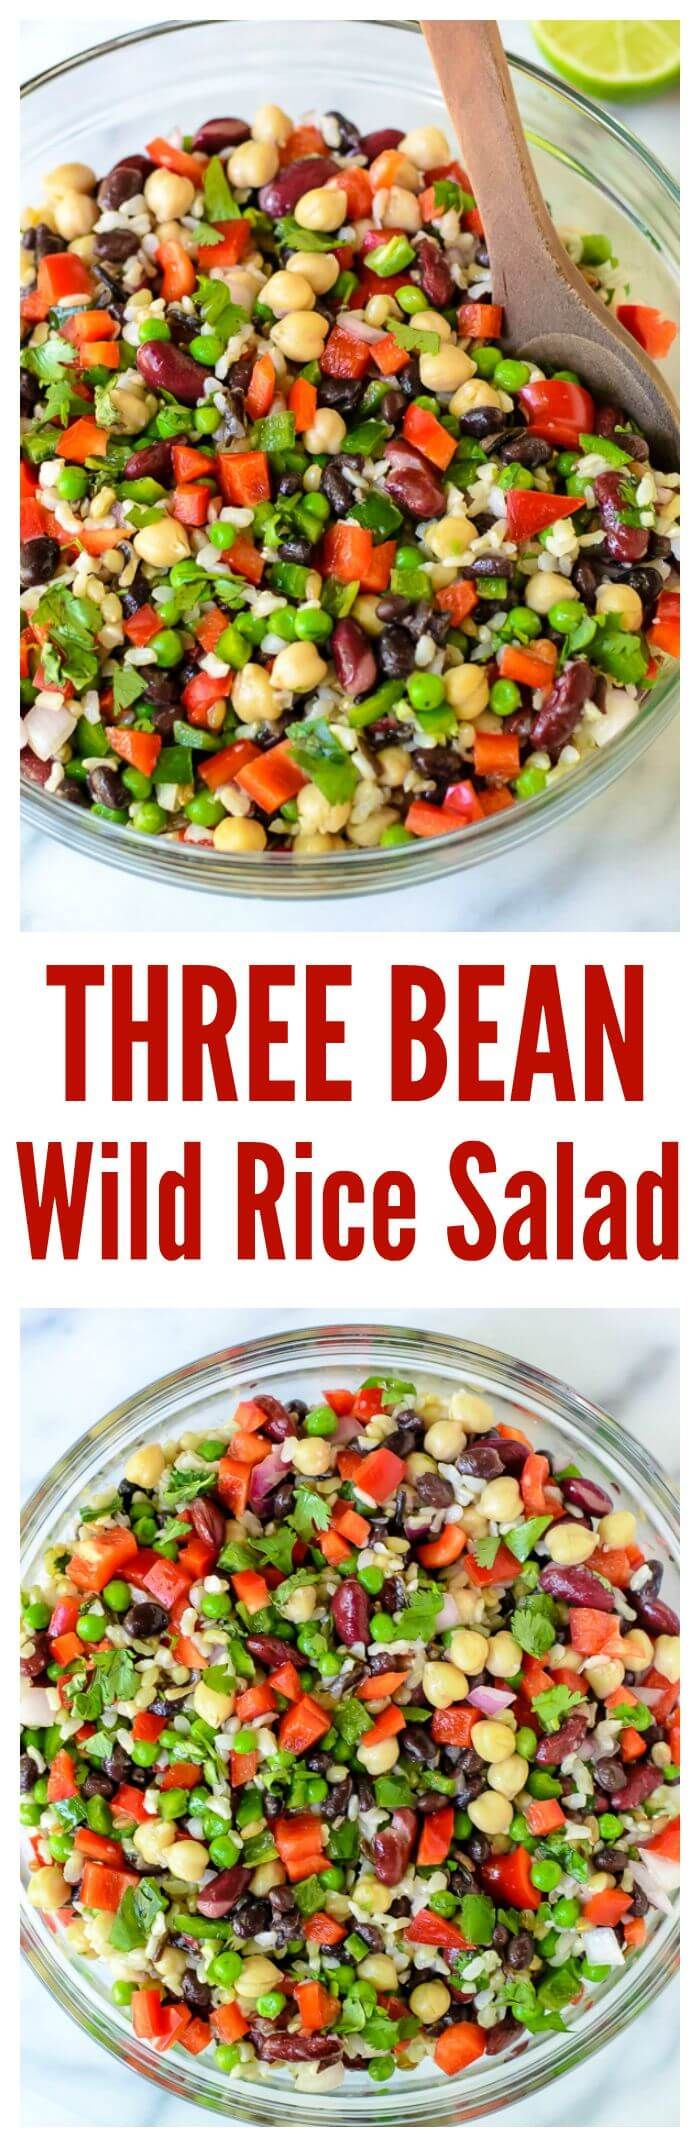 Three Bean Wild Rice Salad. The ultimate potluck recipe! | www.wellplated.com @wellplated.